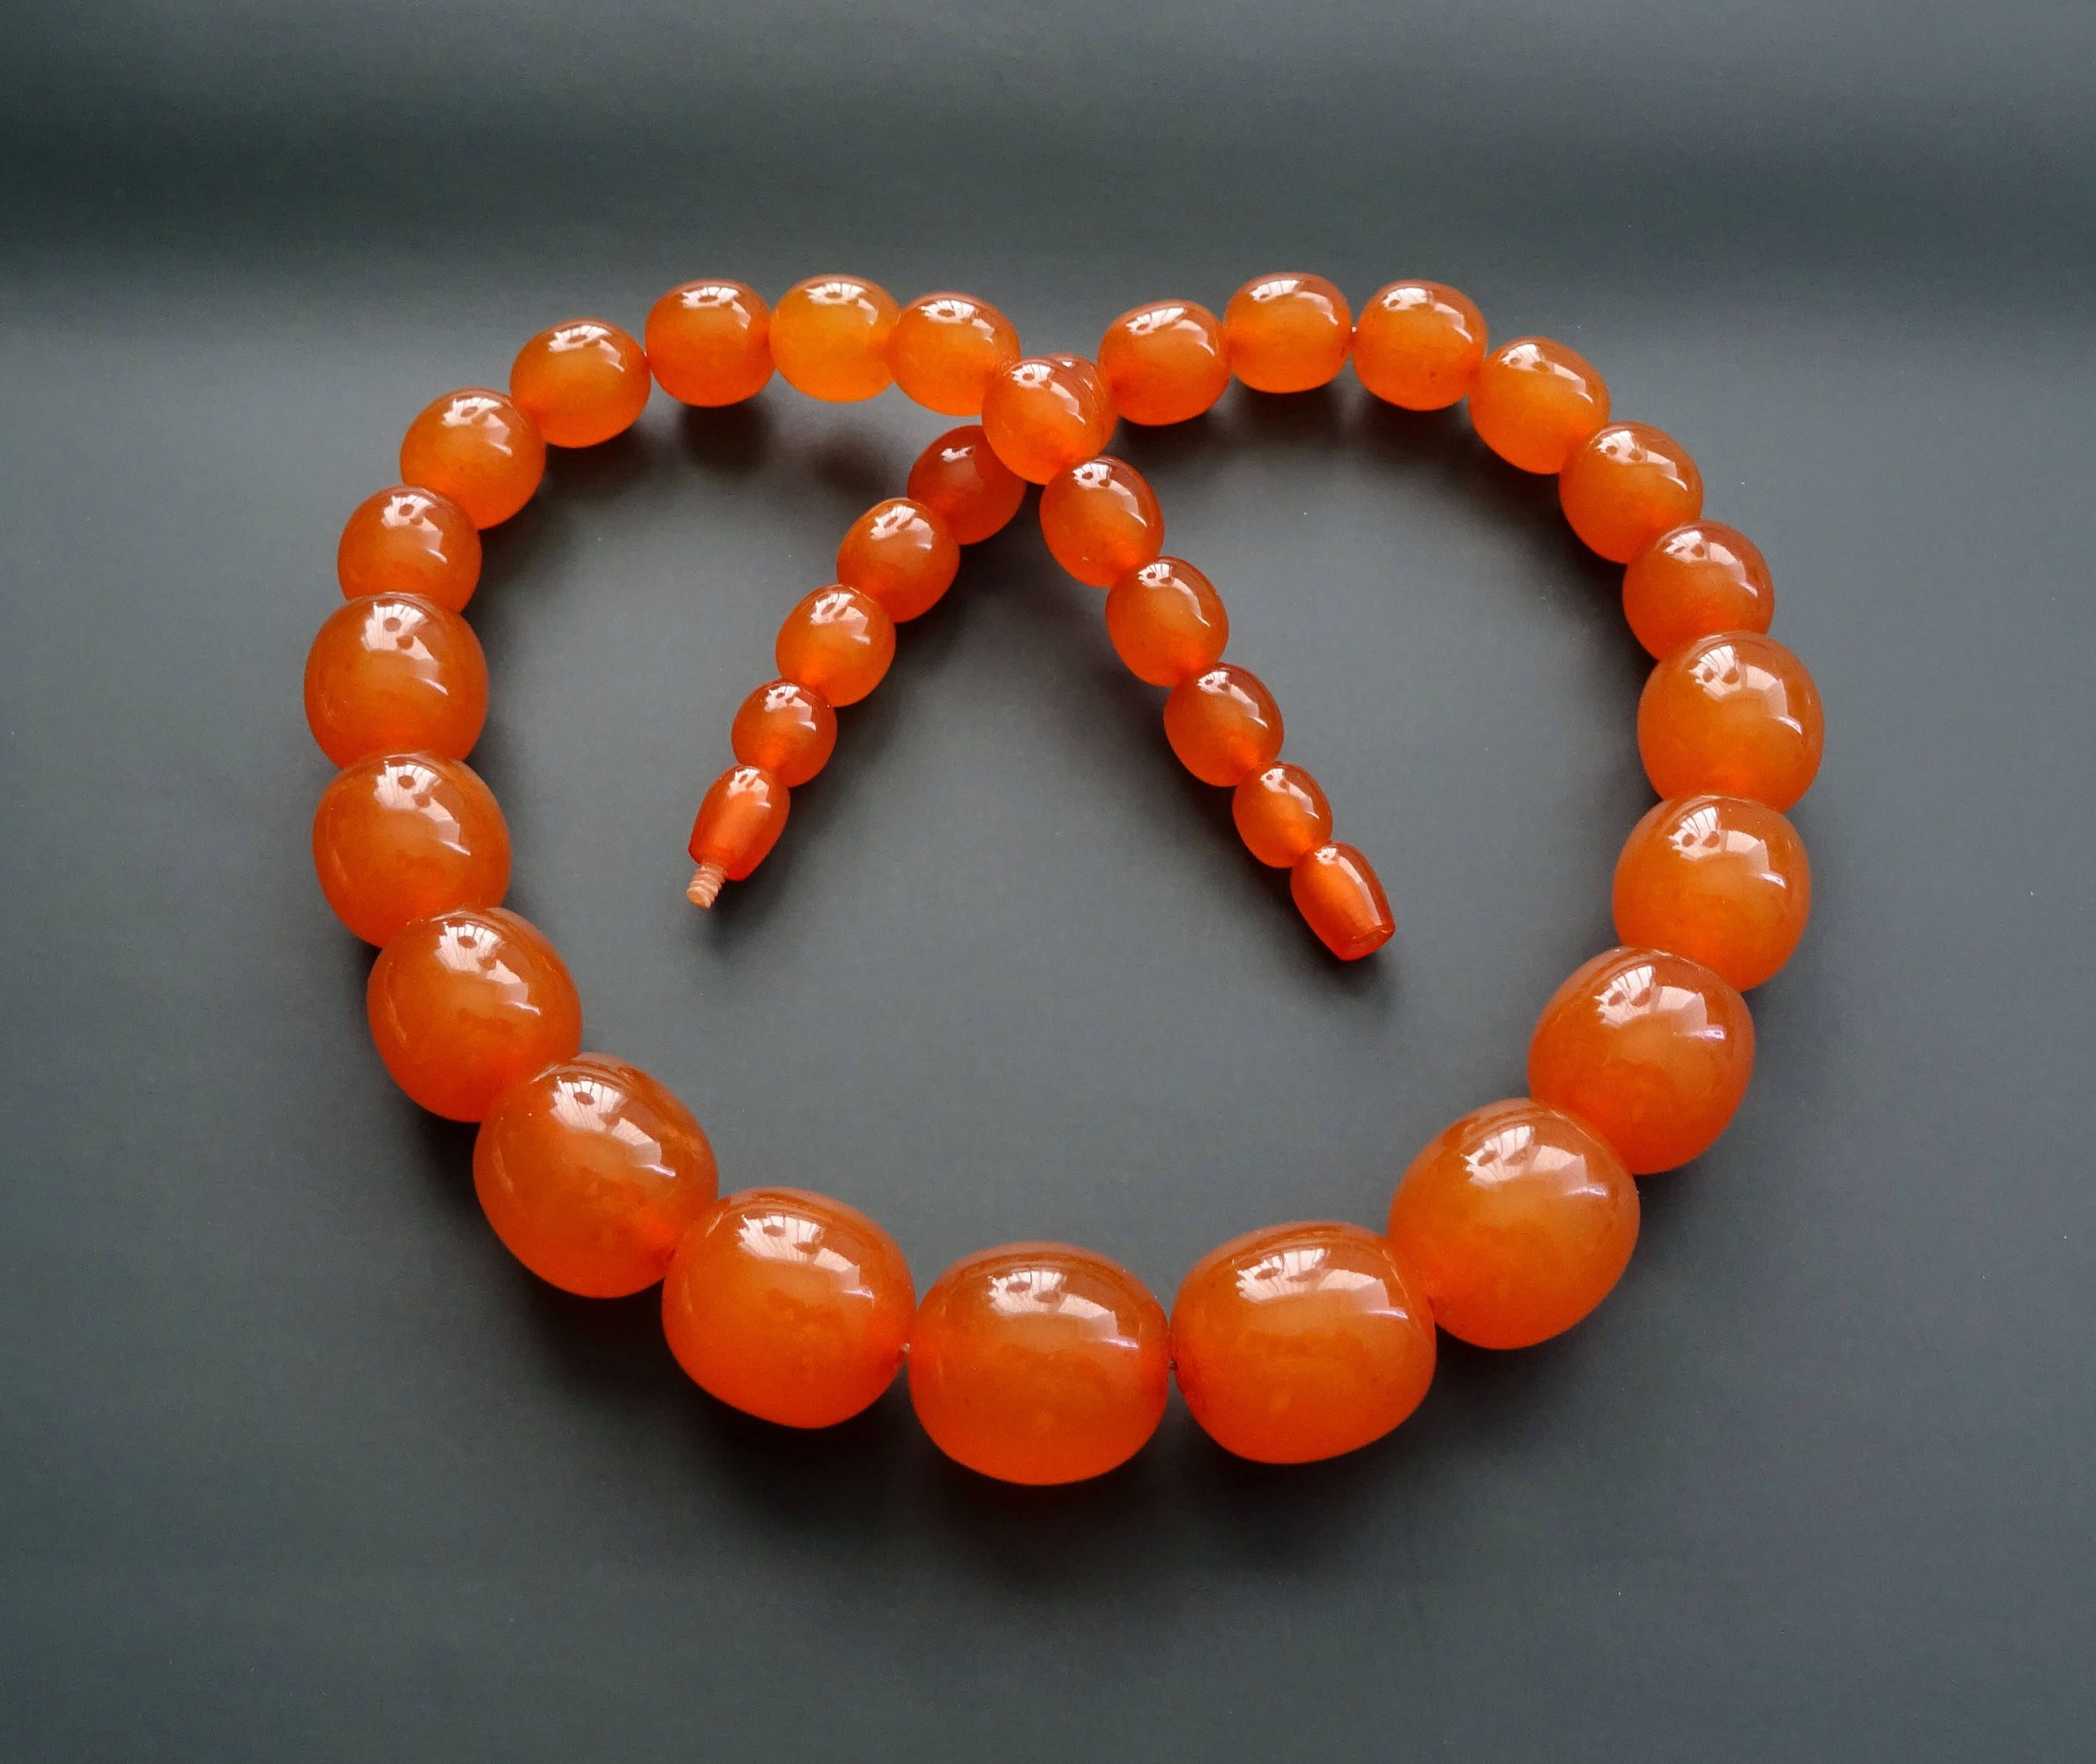 honey amber stand 55 cm 67 gr Wide bone amber necklace vintage jewelry statement jewellery not pressed natural baltic amber